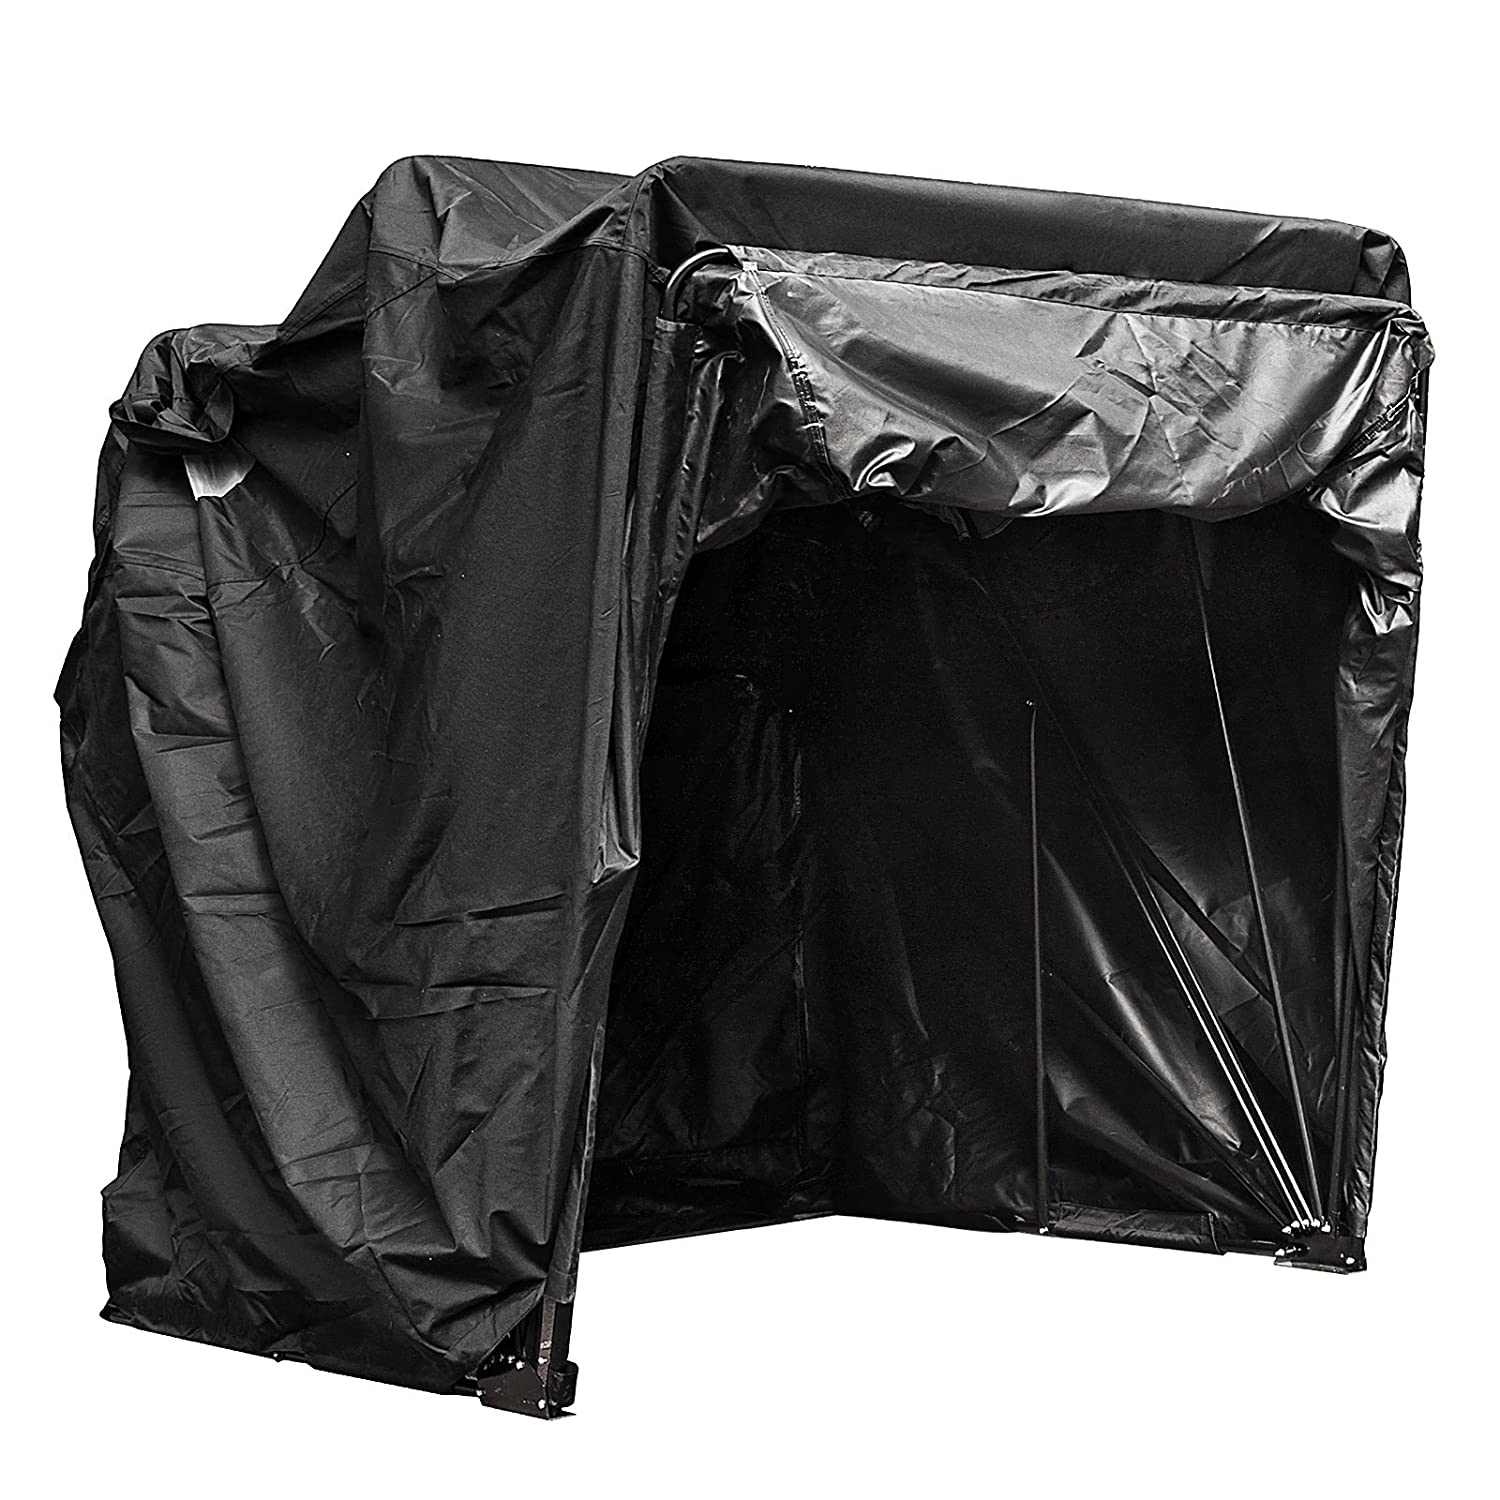 Happybuy Motorcycle Shelter Storage Waterproof Motorbike Storage Tent Oxford 600D Motorcycle Shelter Shed Fit Most Motorcycles Black